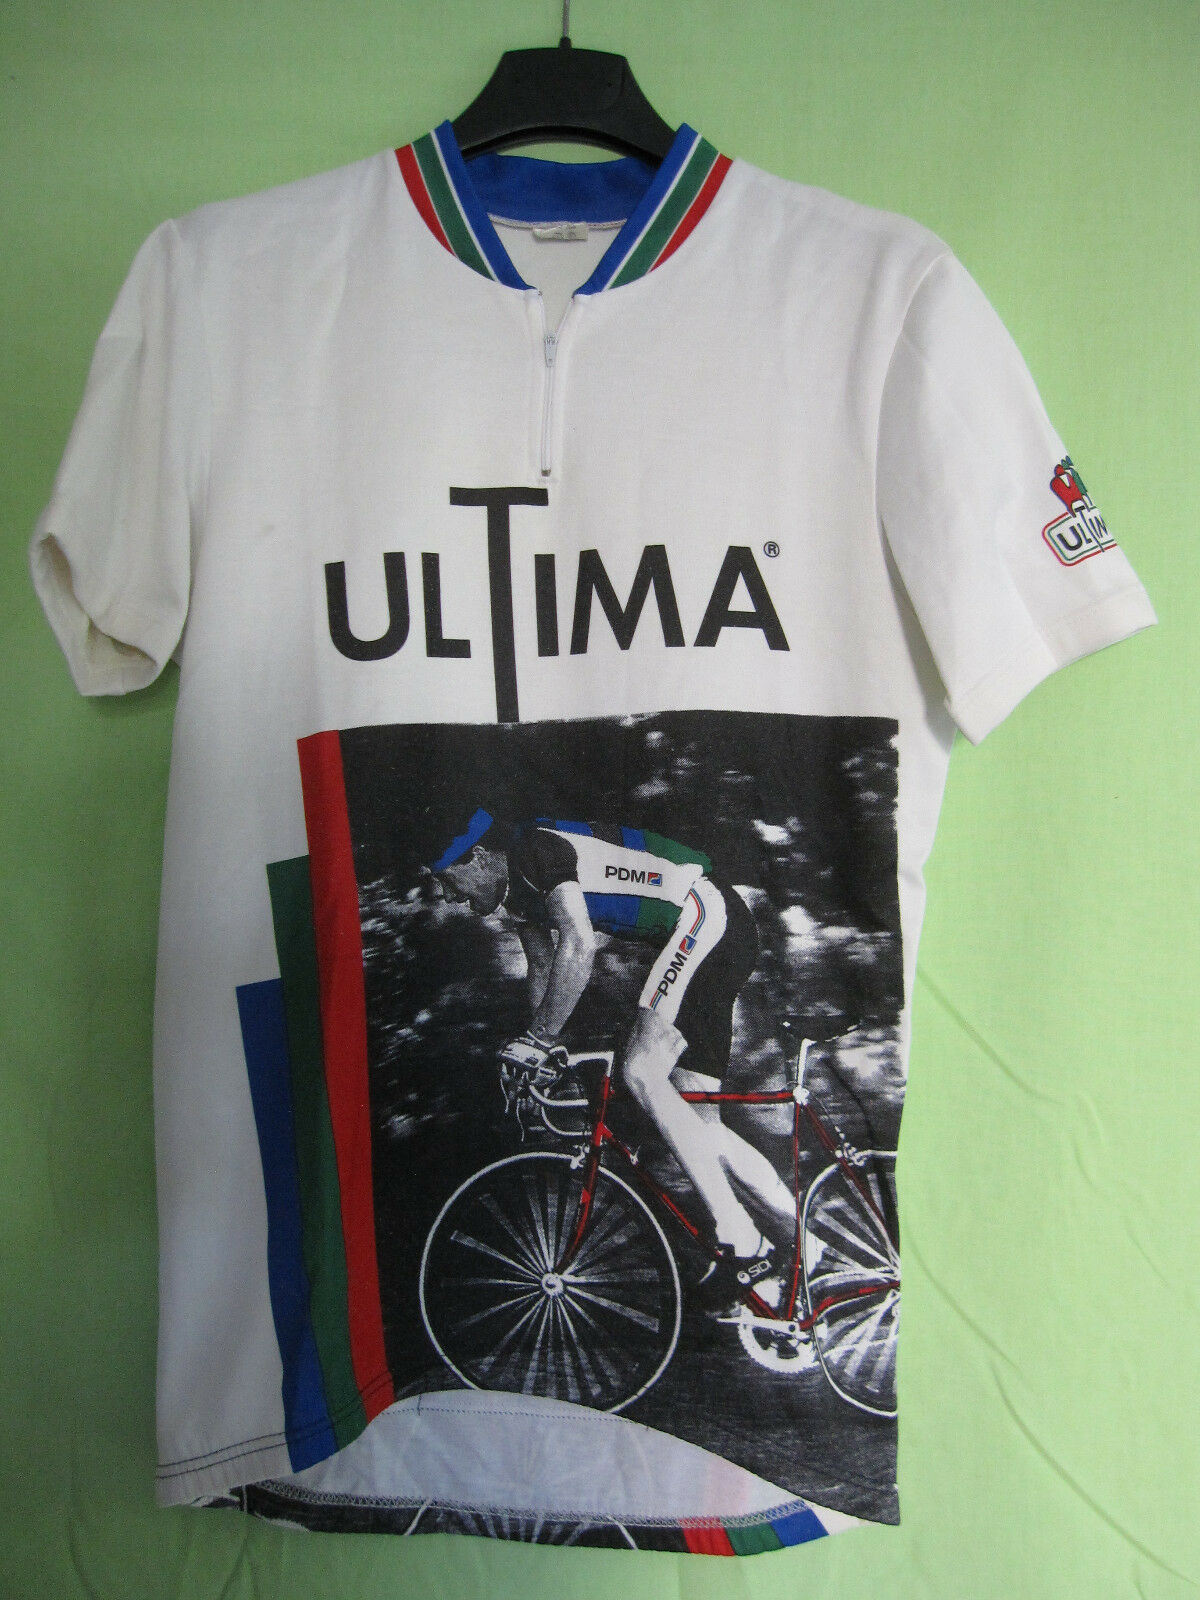 Maillot Cycliste vintage ULTIMA PDM shirt cycling 90'S Cycles - L